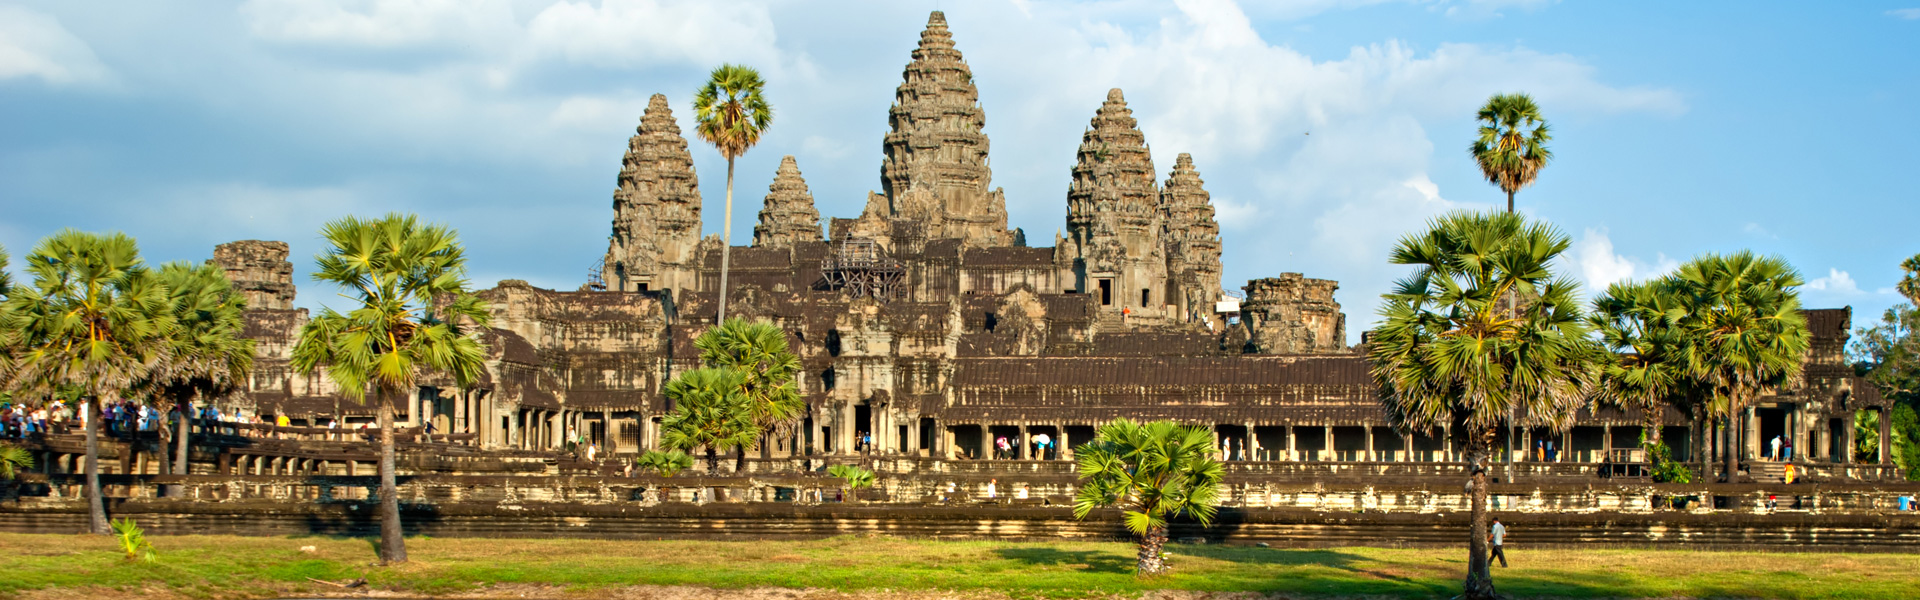 What to pack for a holiday to Cambodia | Wendy Wu Tours Blog